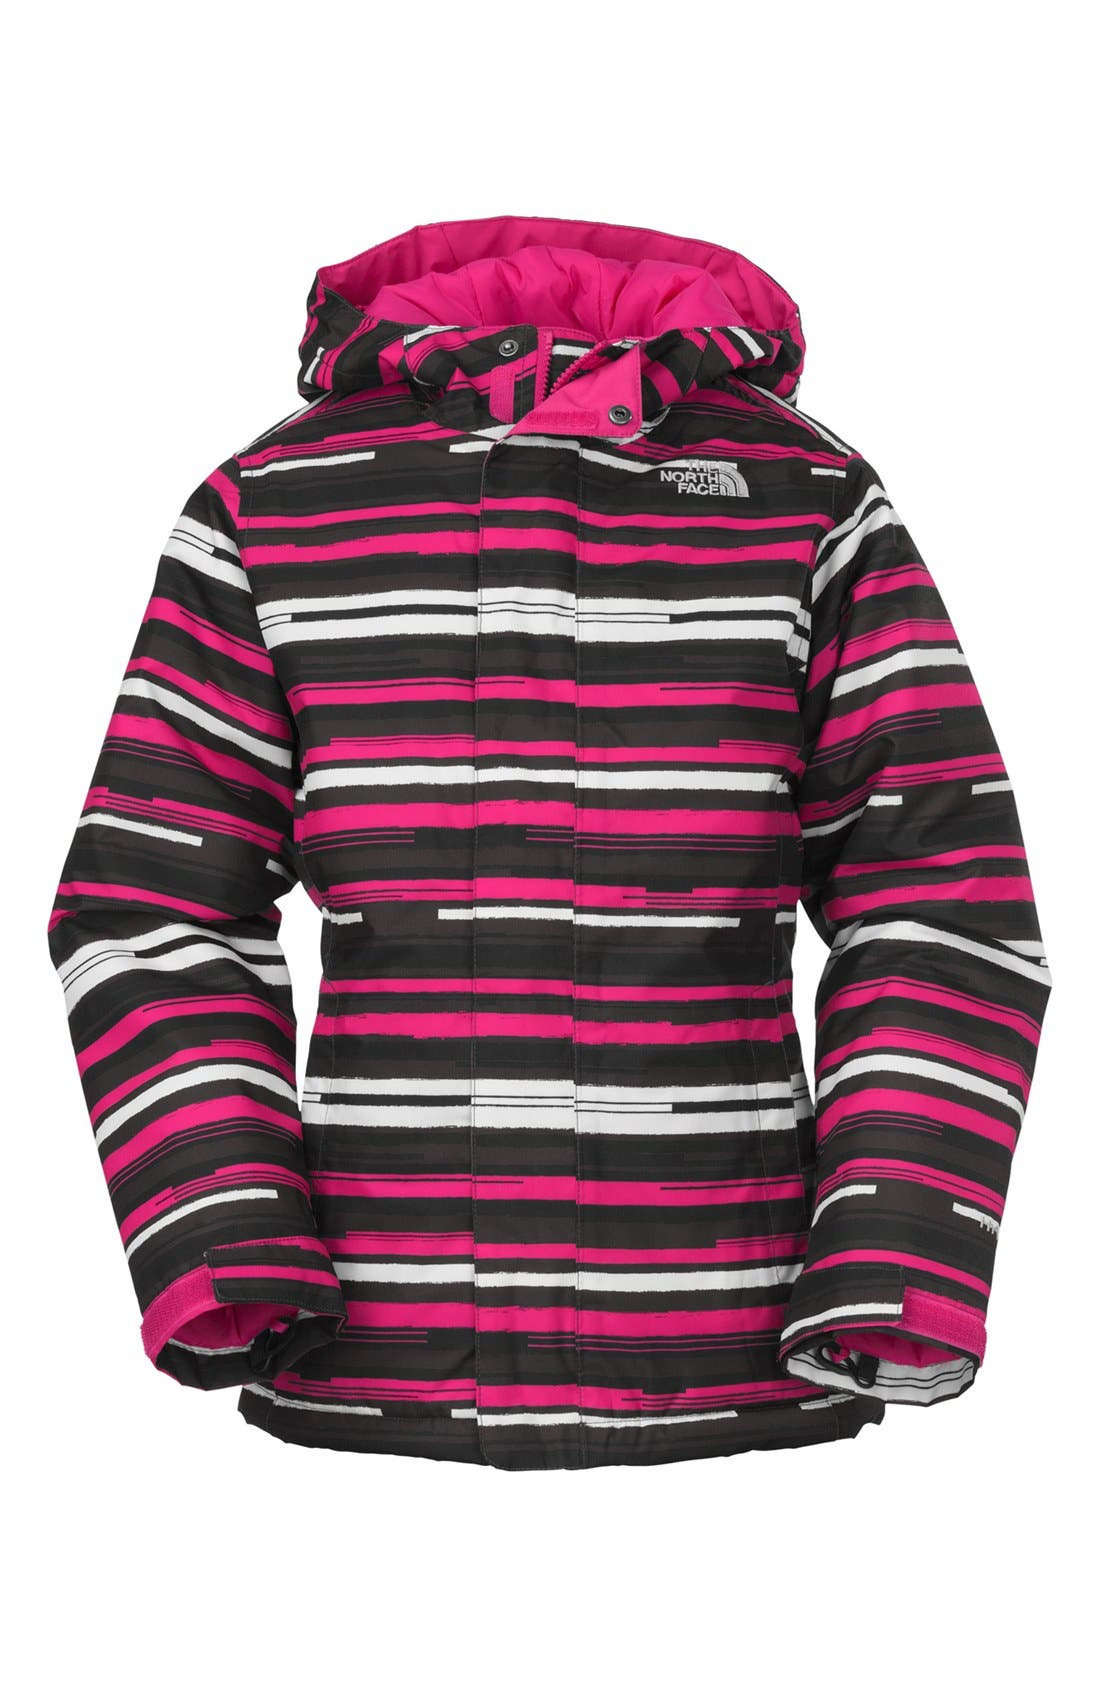 Main Image - The North Face 'Adalee' Jacket (Little Girls & Big Girls)